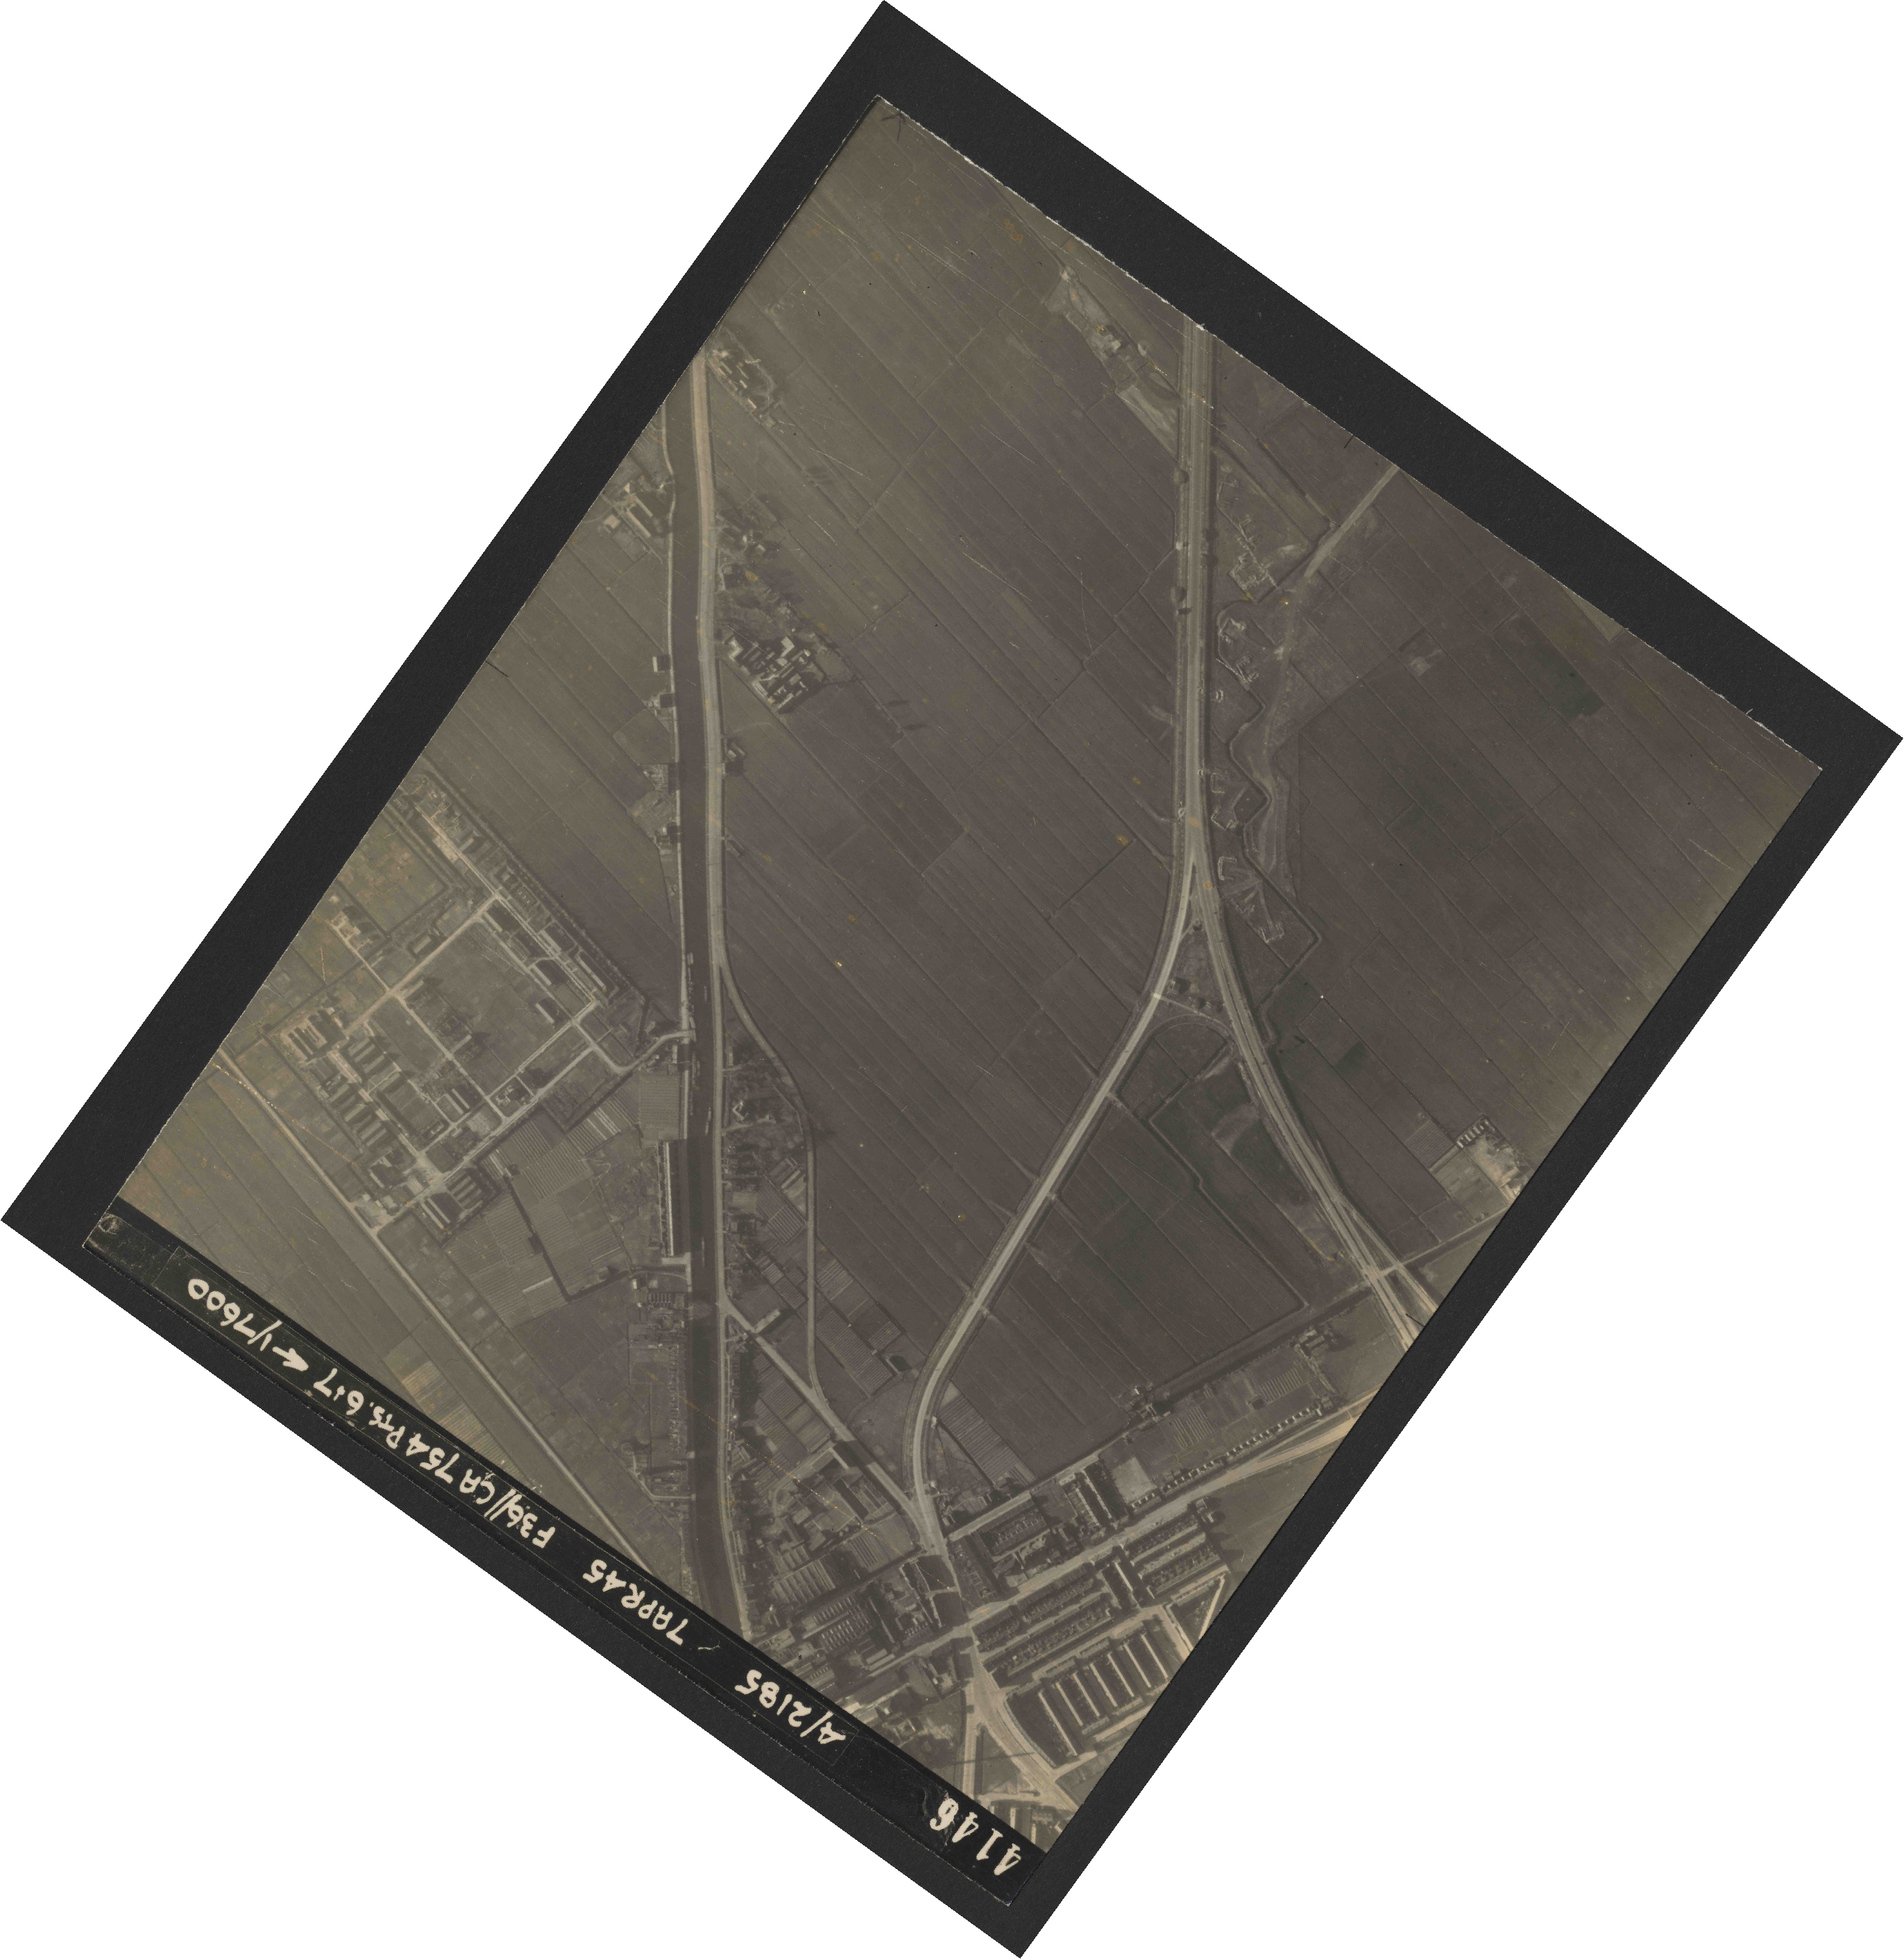 Collection RAF aerial photos 1940-1945 - flight 303, run 13, photo 4146